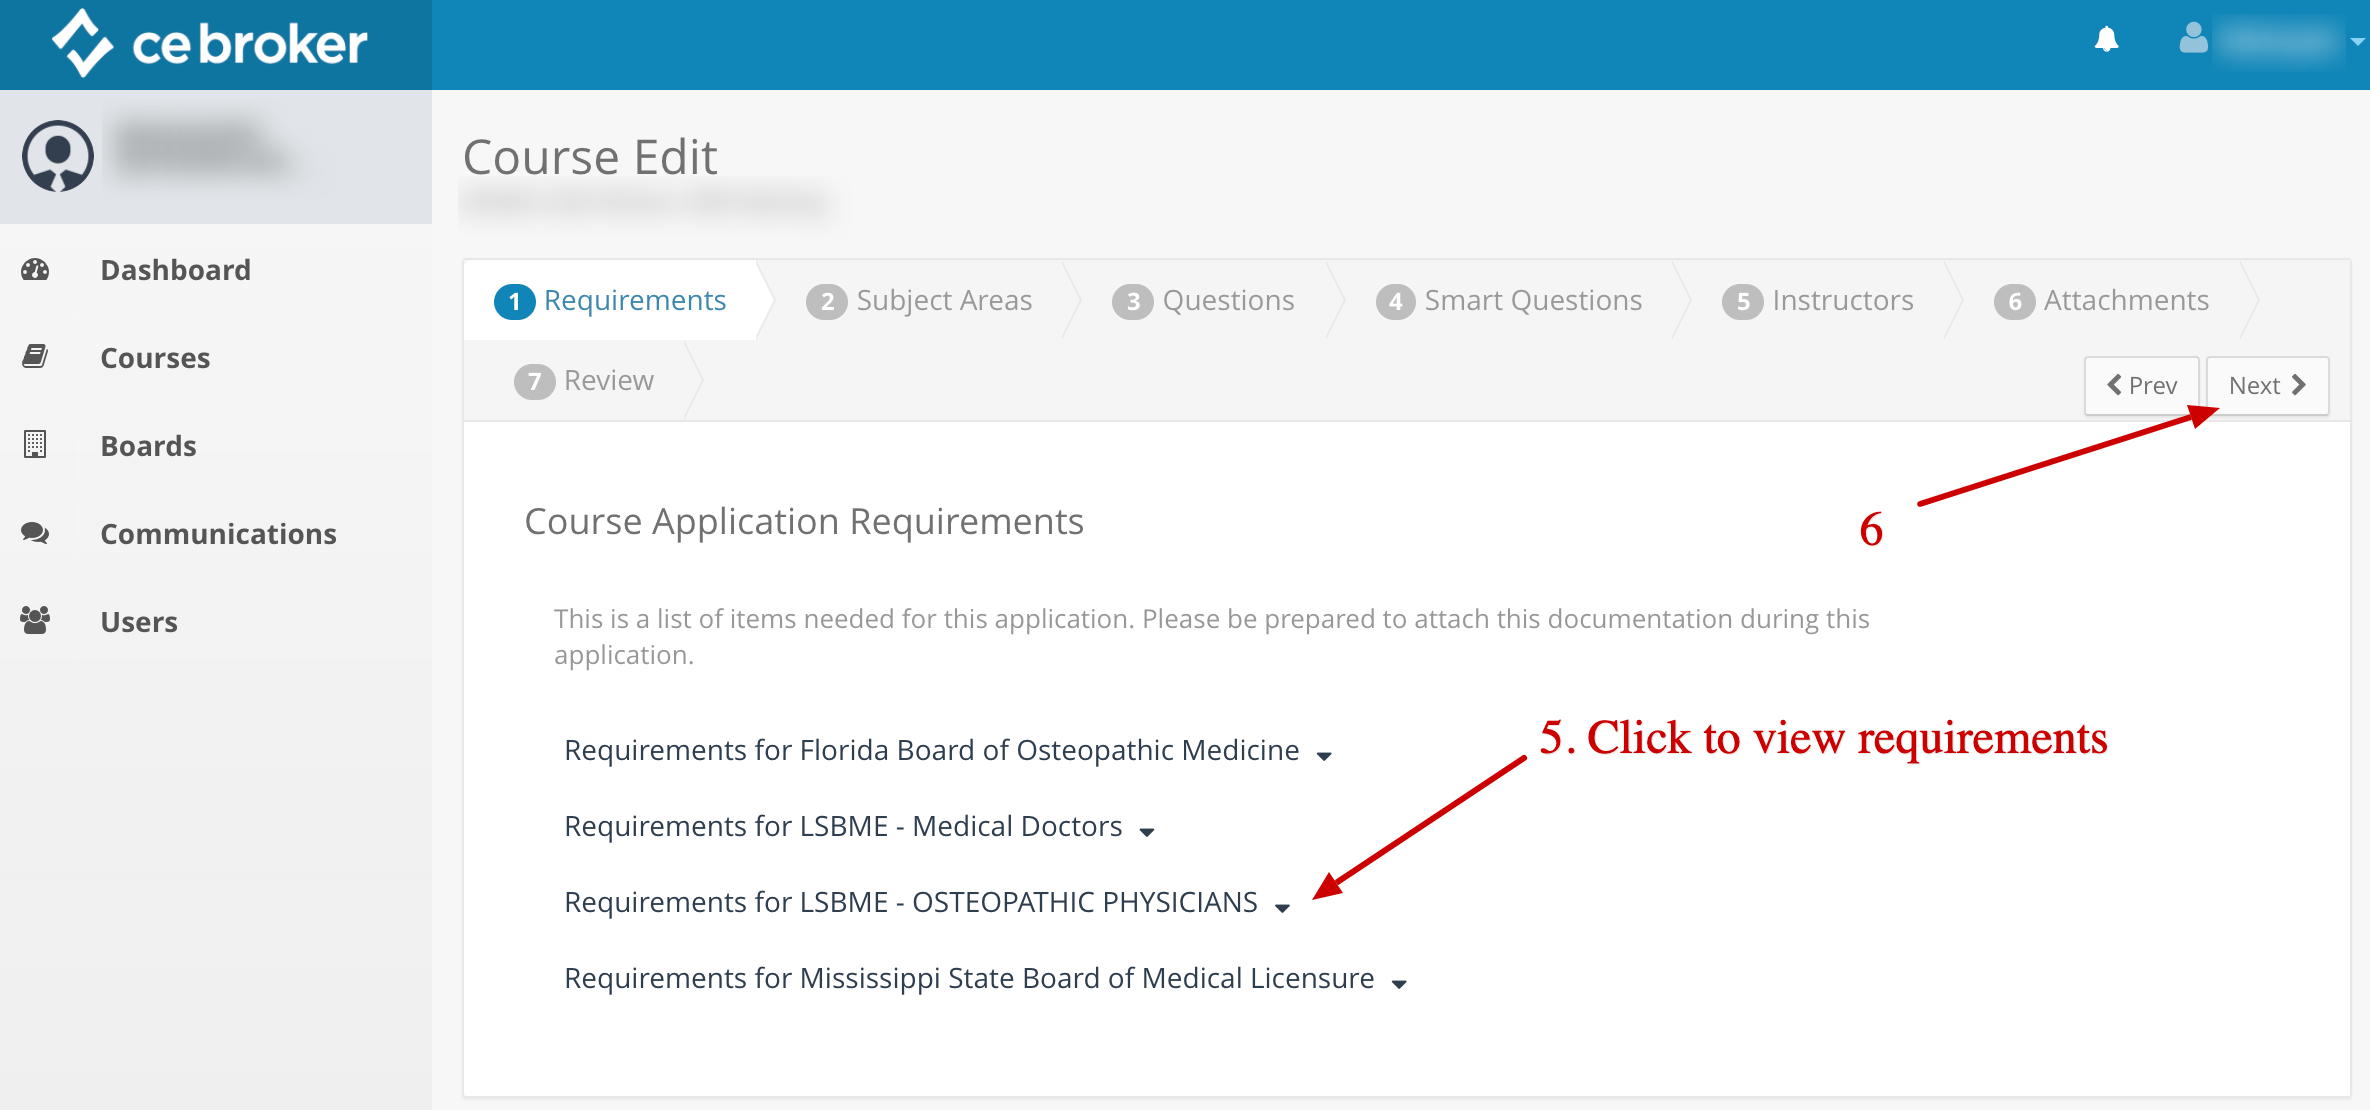 Screenshot of the course application form. An arrow points to a list of Boards that can be clicked to reveal requirements. Another arrow points to a button that says Next.